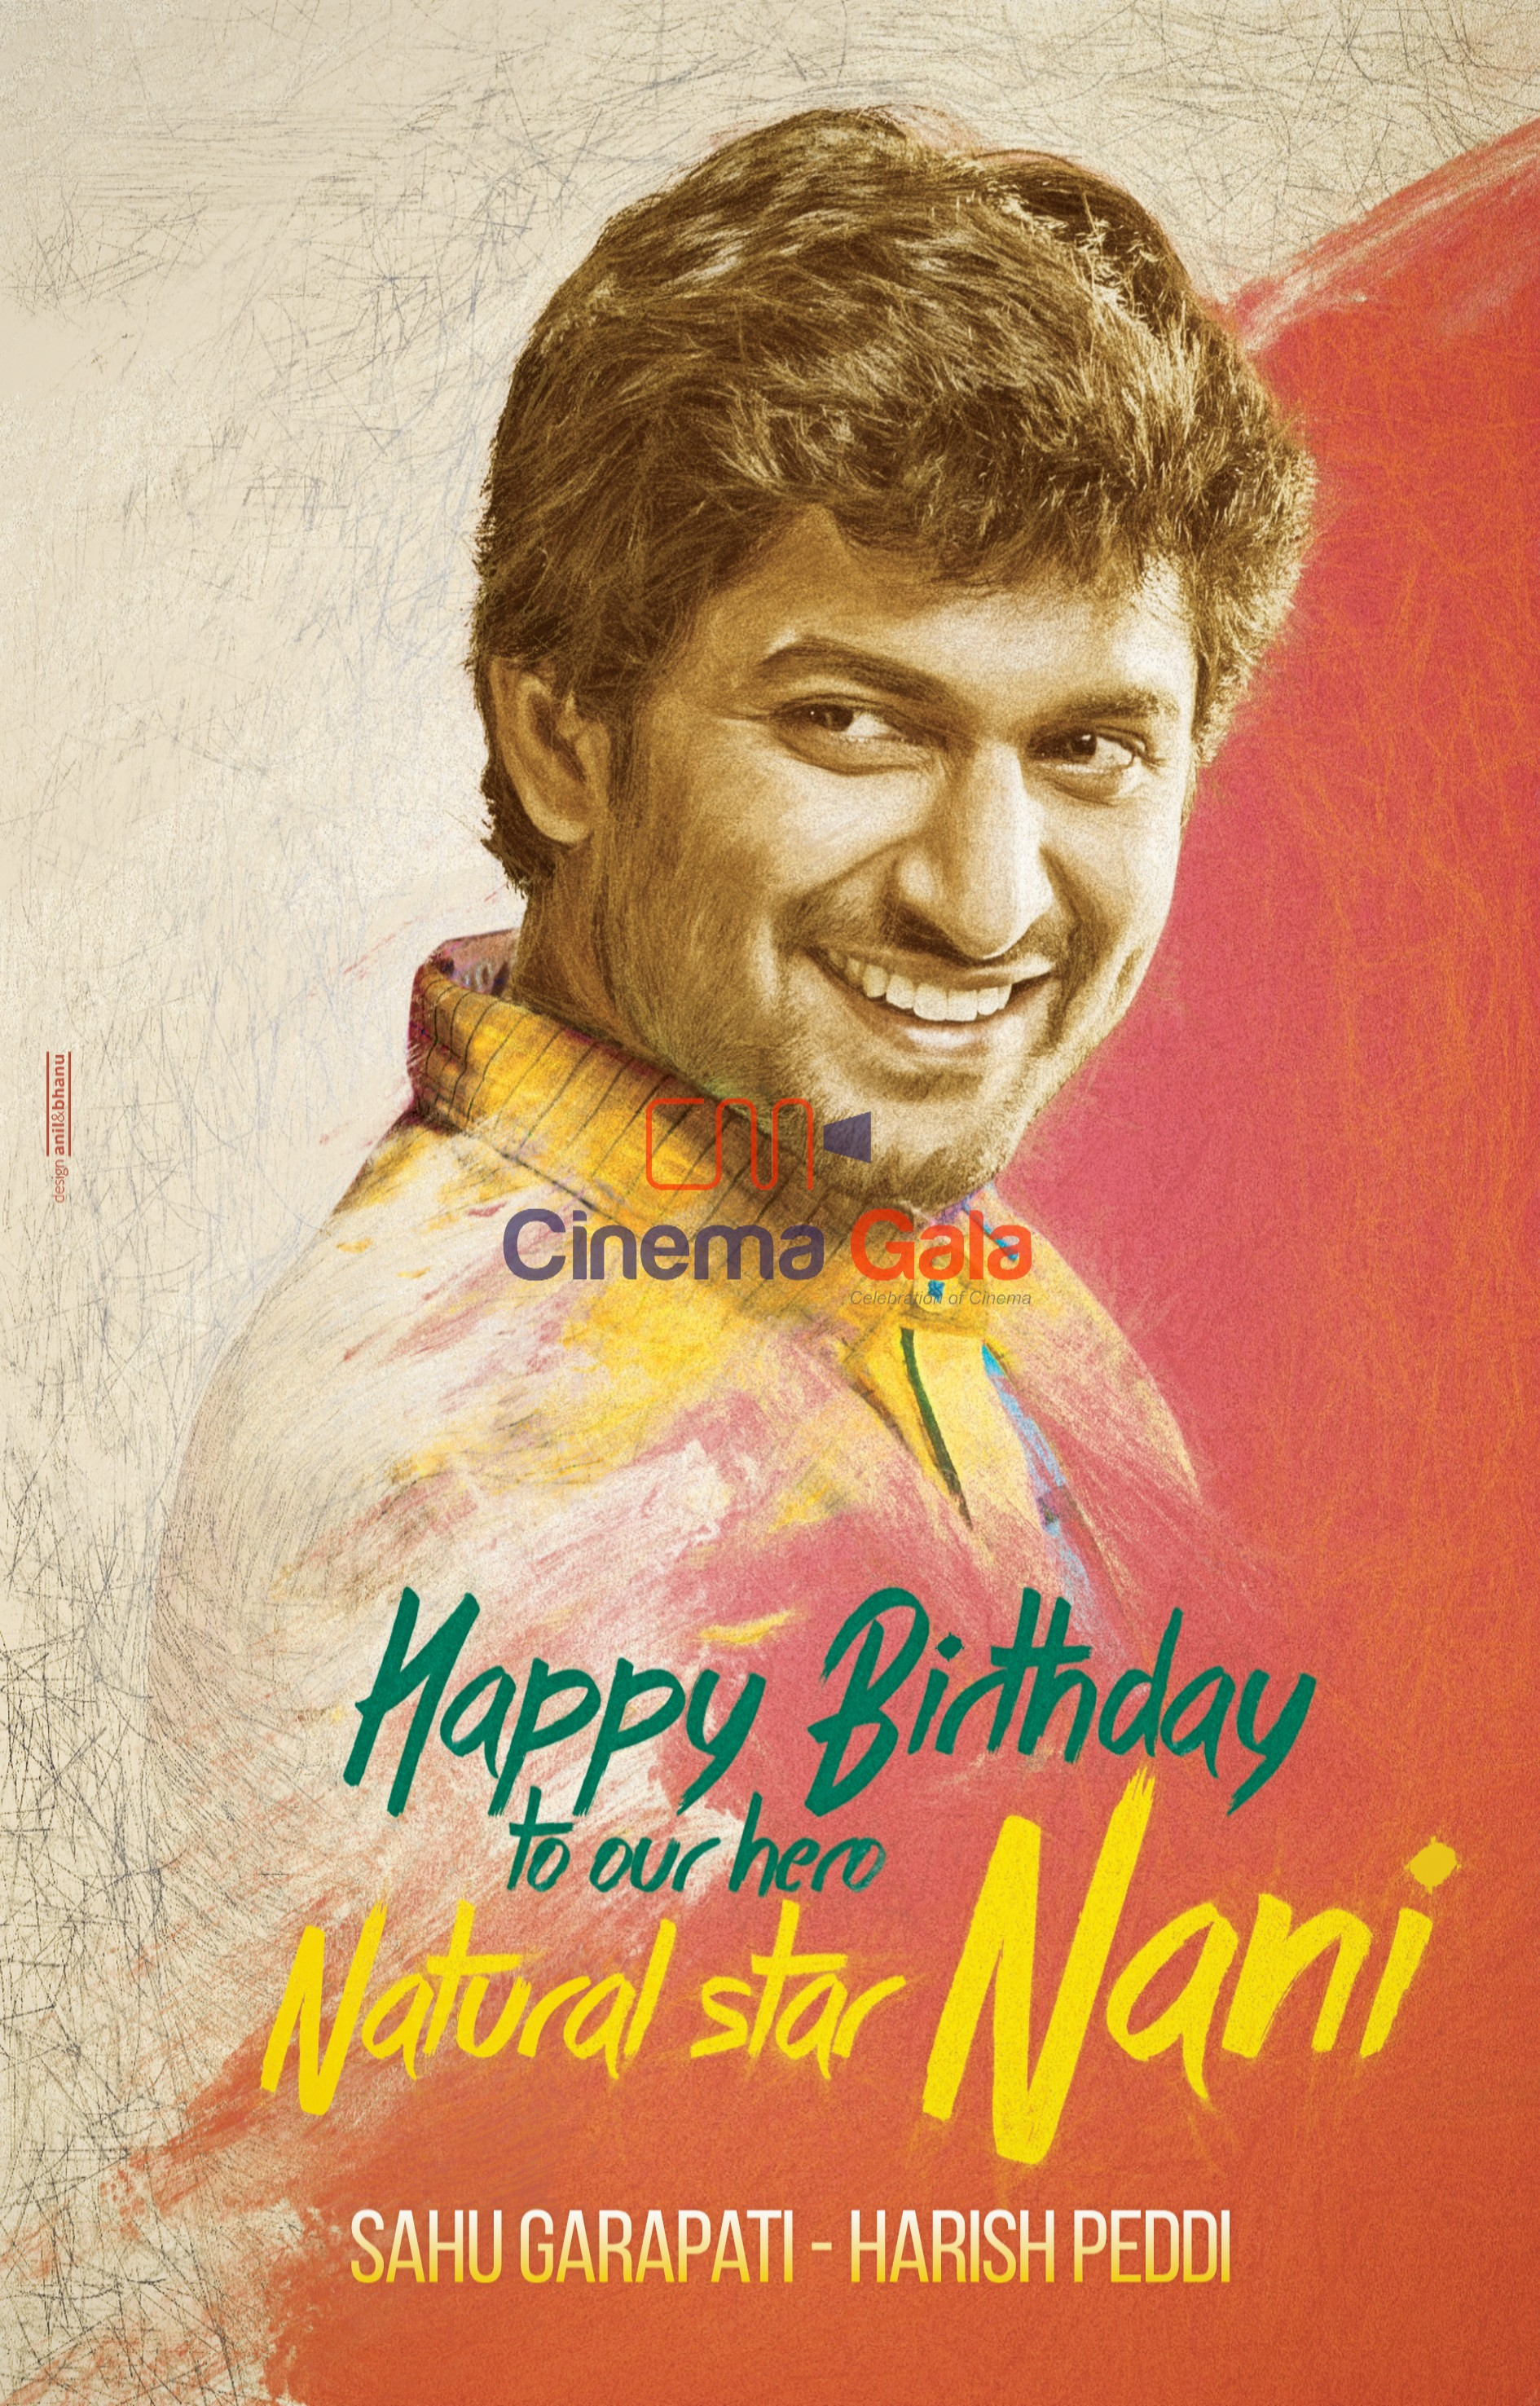 birthday wishes posters ; Nani%2520birthday%2520wishes%2520poster%2520%2520%2520cinemagala001